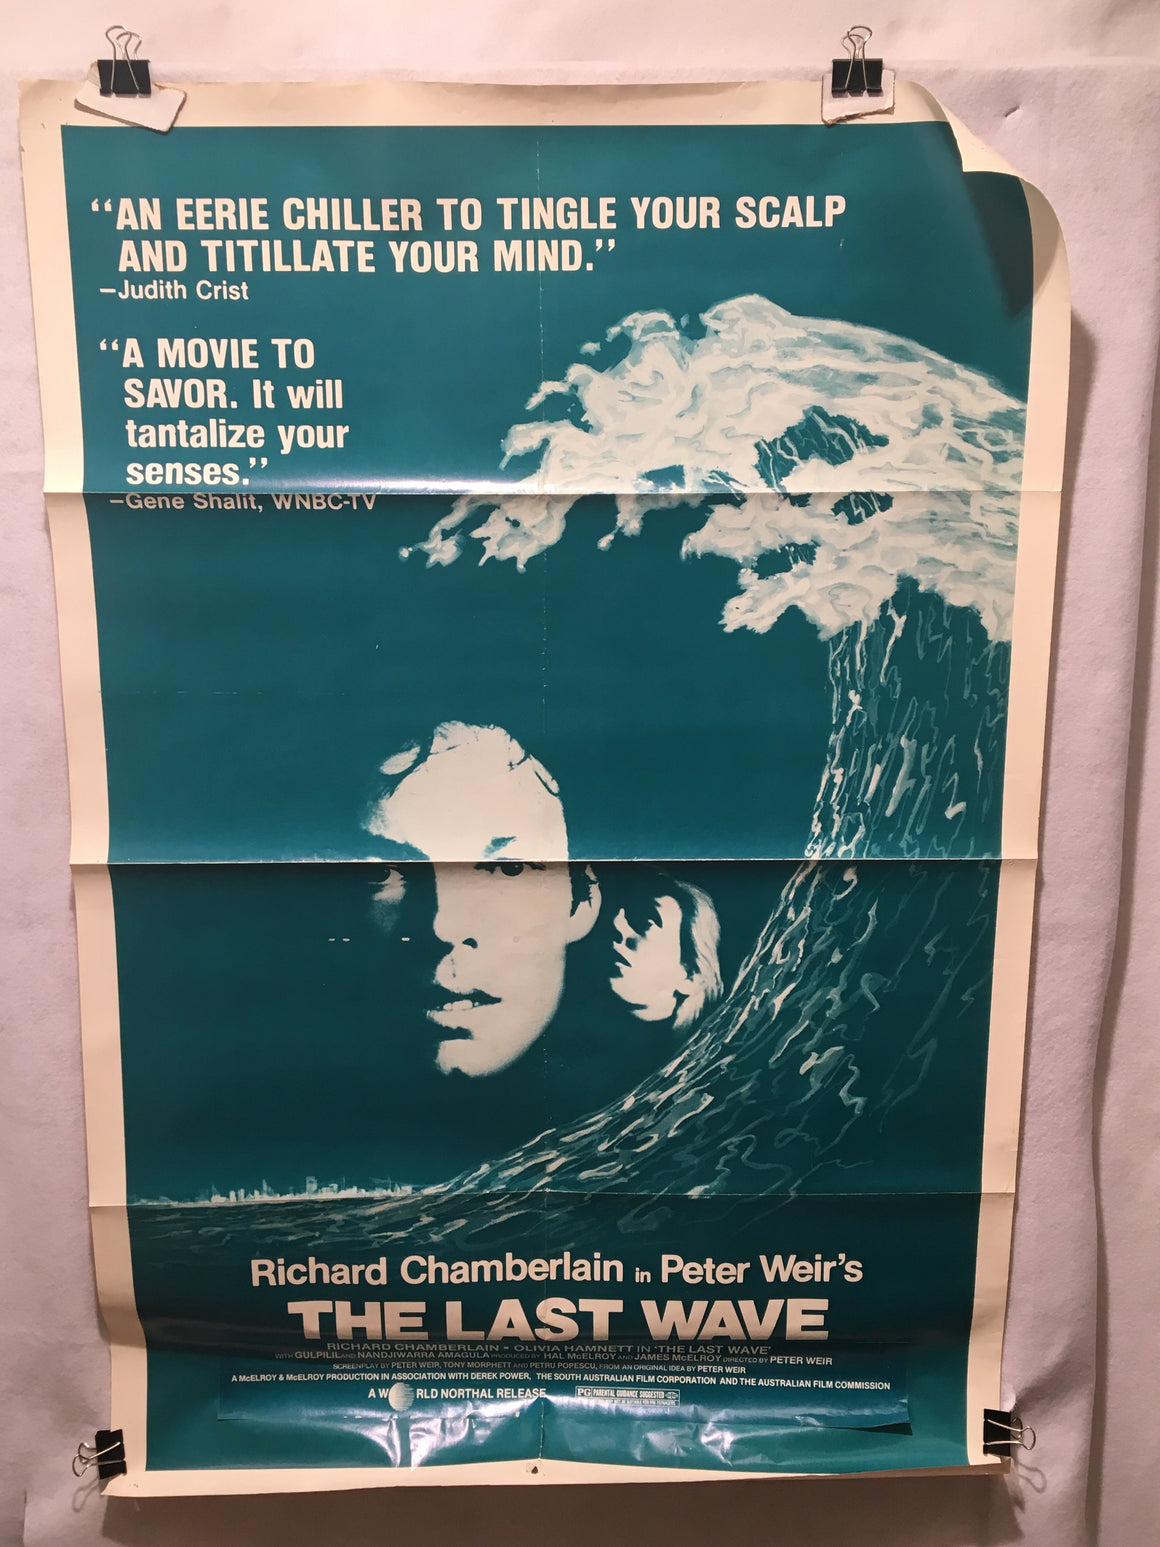 1970s Movie Posters - Get A Treasure